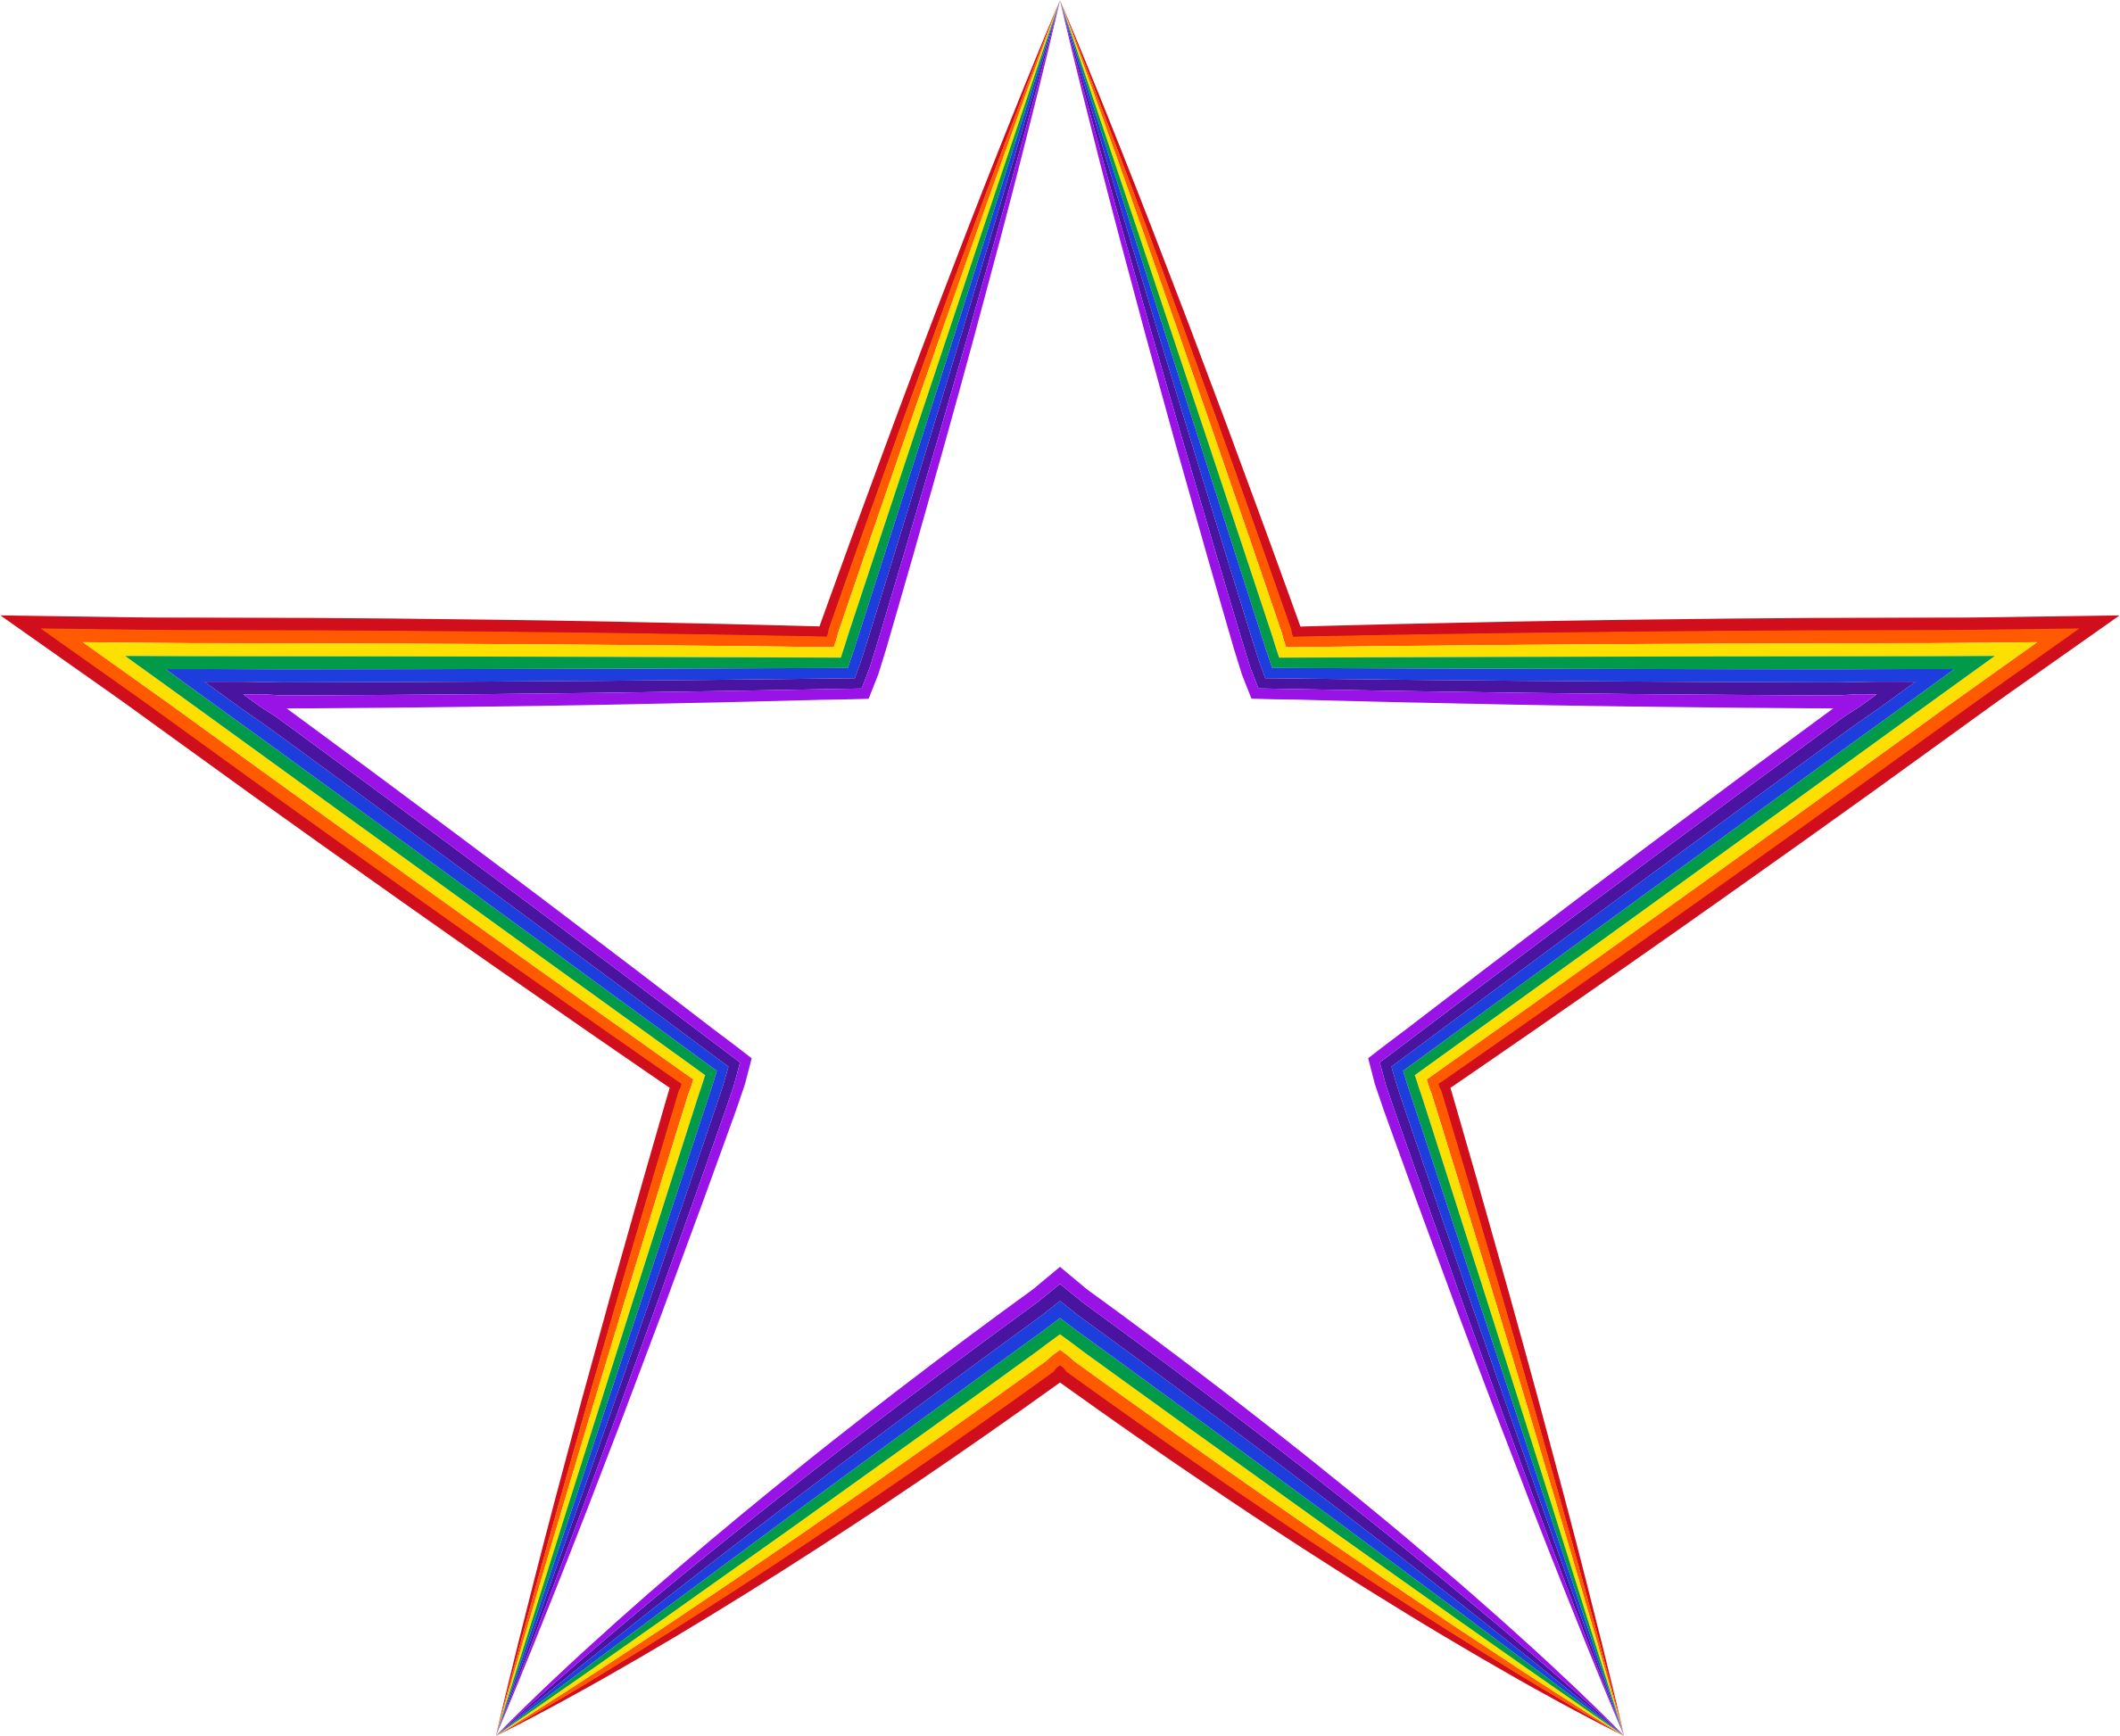 Rainbow Star 4 by GDJ